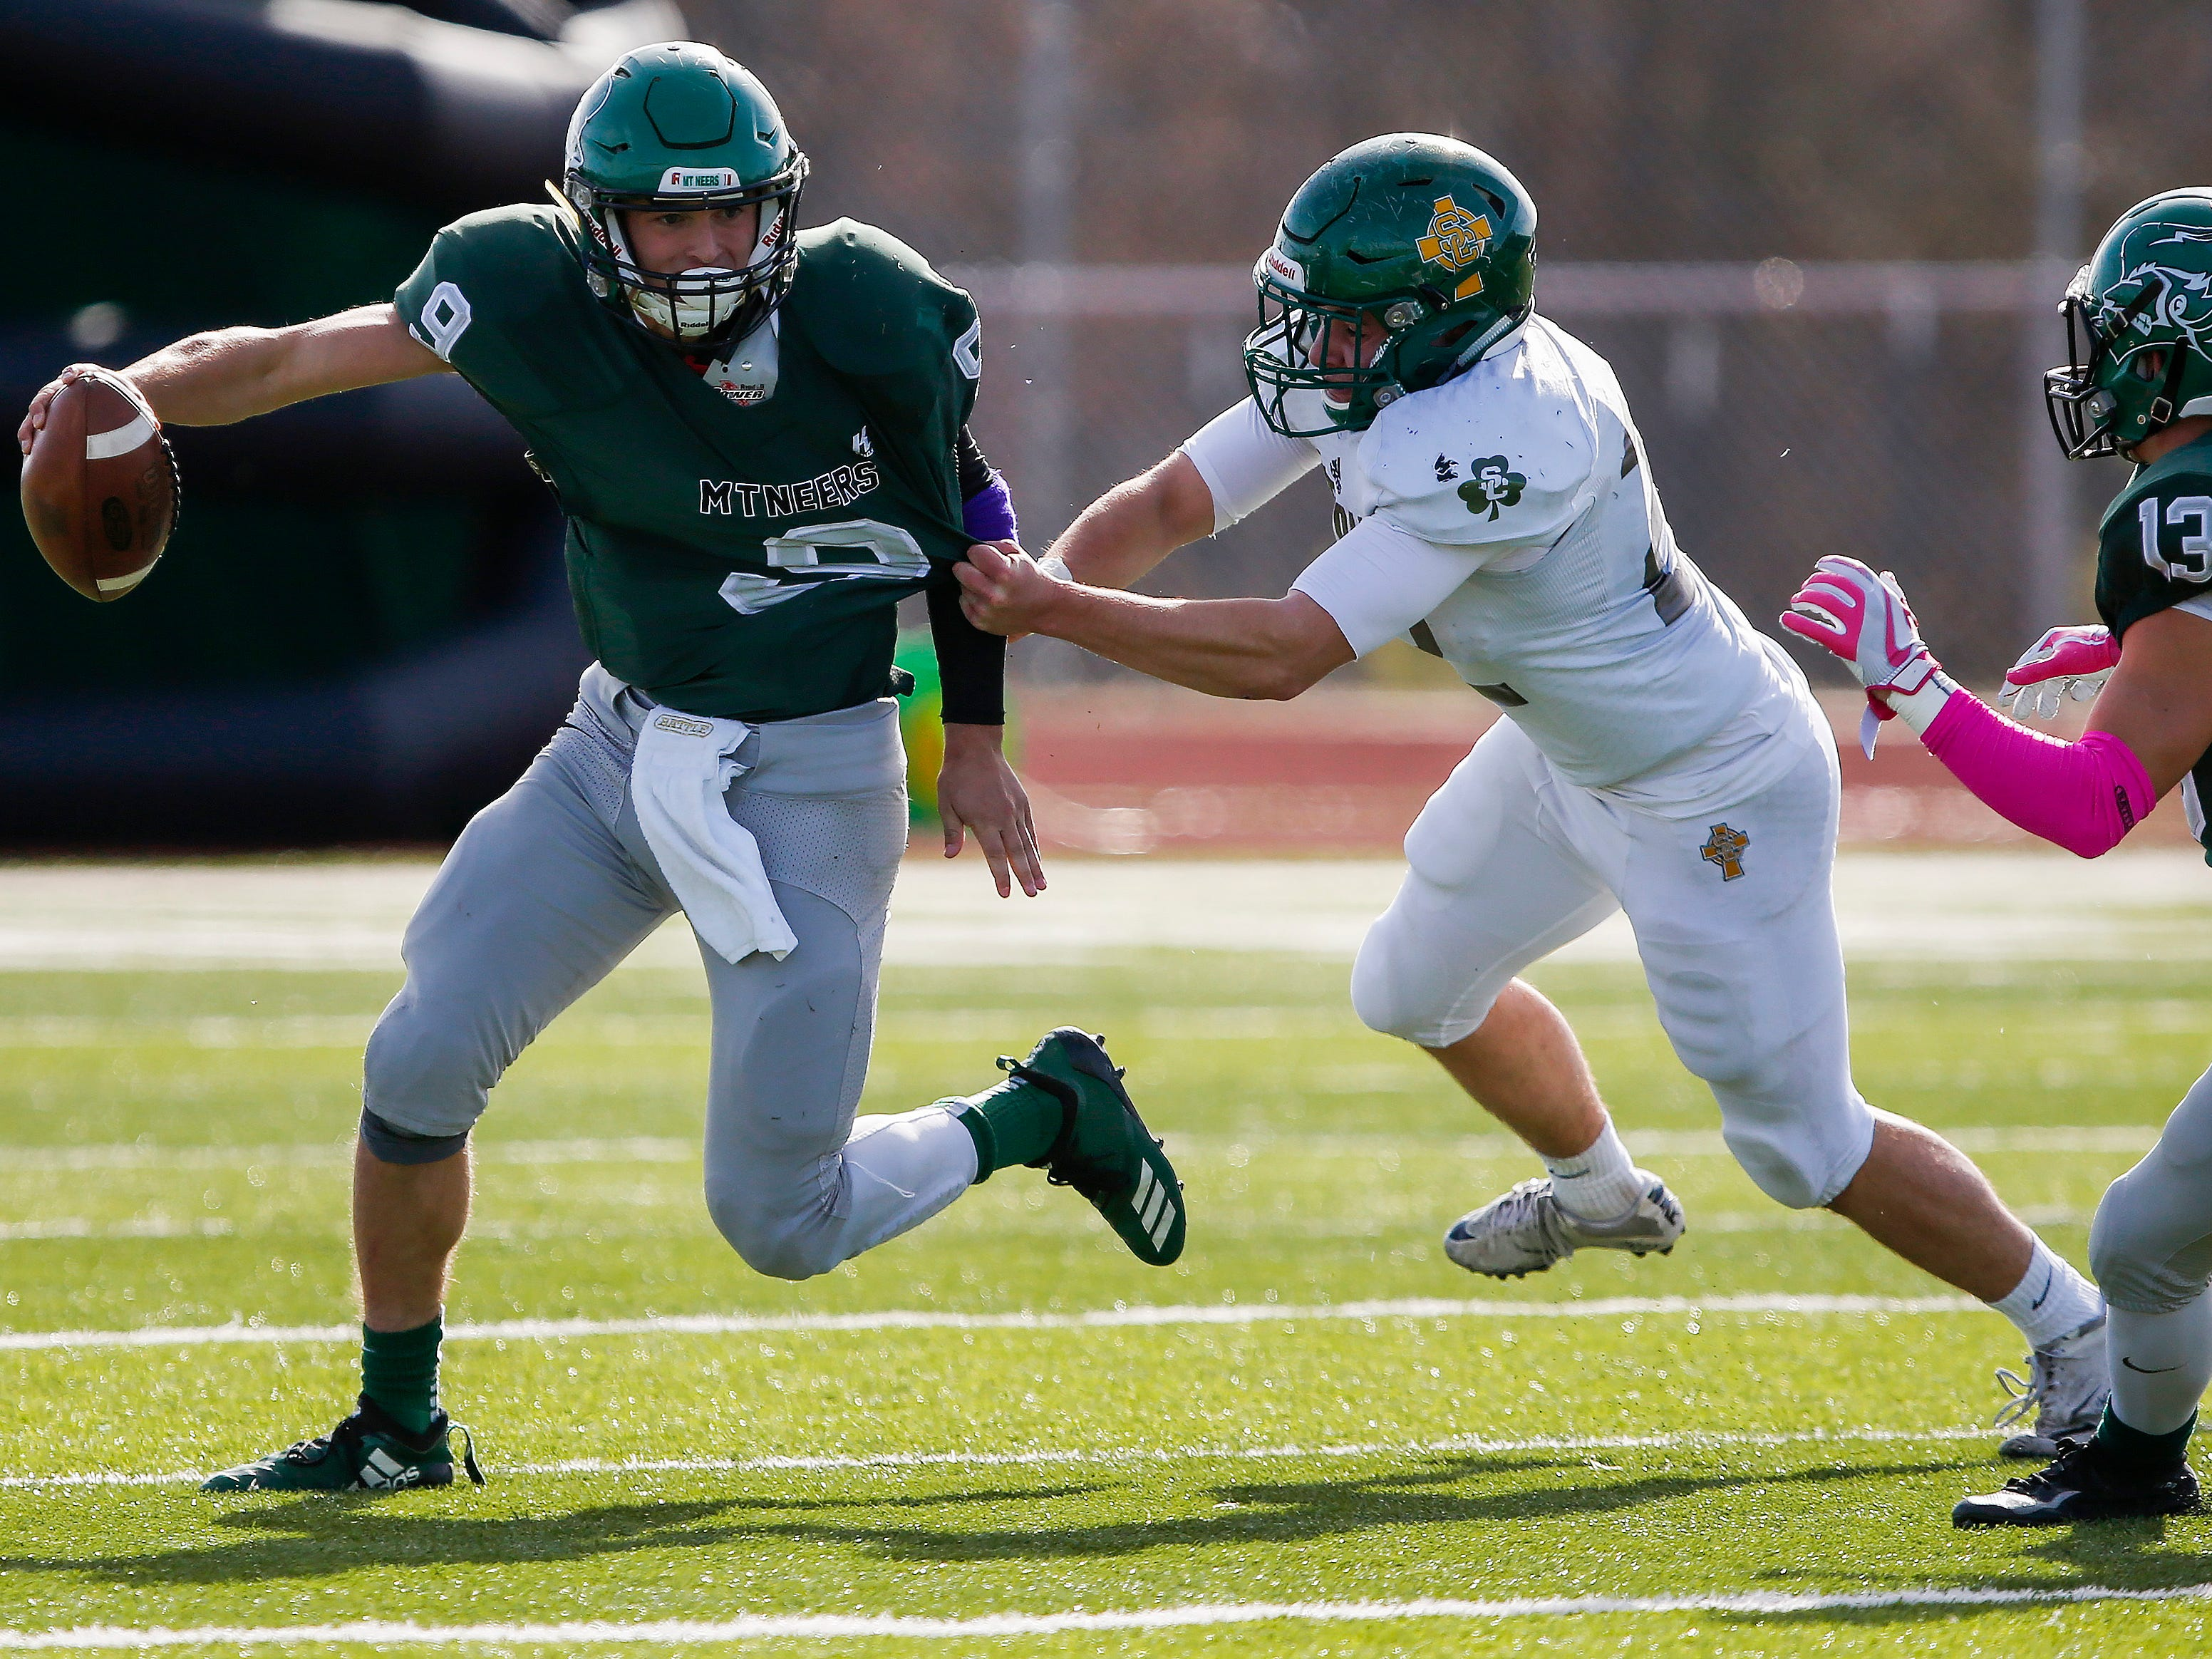 Springfield Catholic lost in the Class 3 Quarterfinal game against Mount Vernon at Mount Vernon High School on Saturday, Nov. 17, 2018.